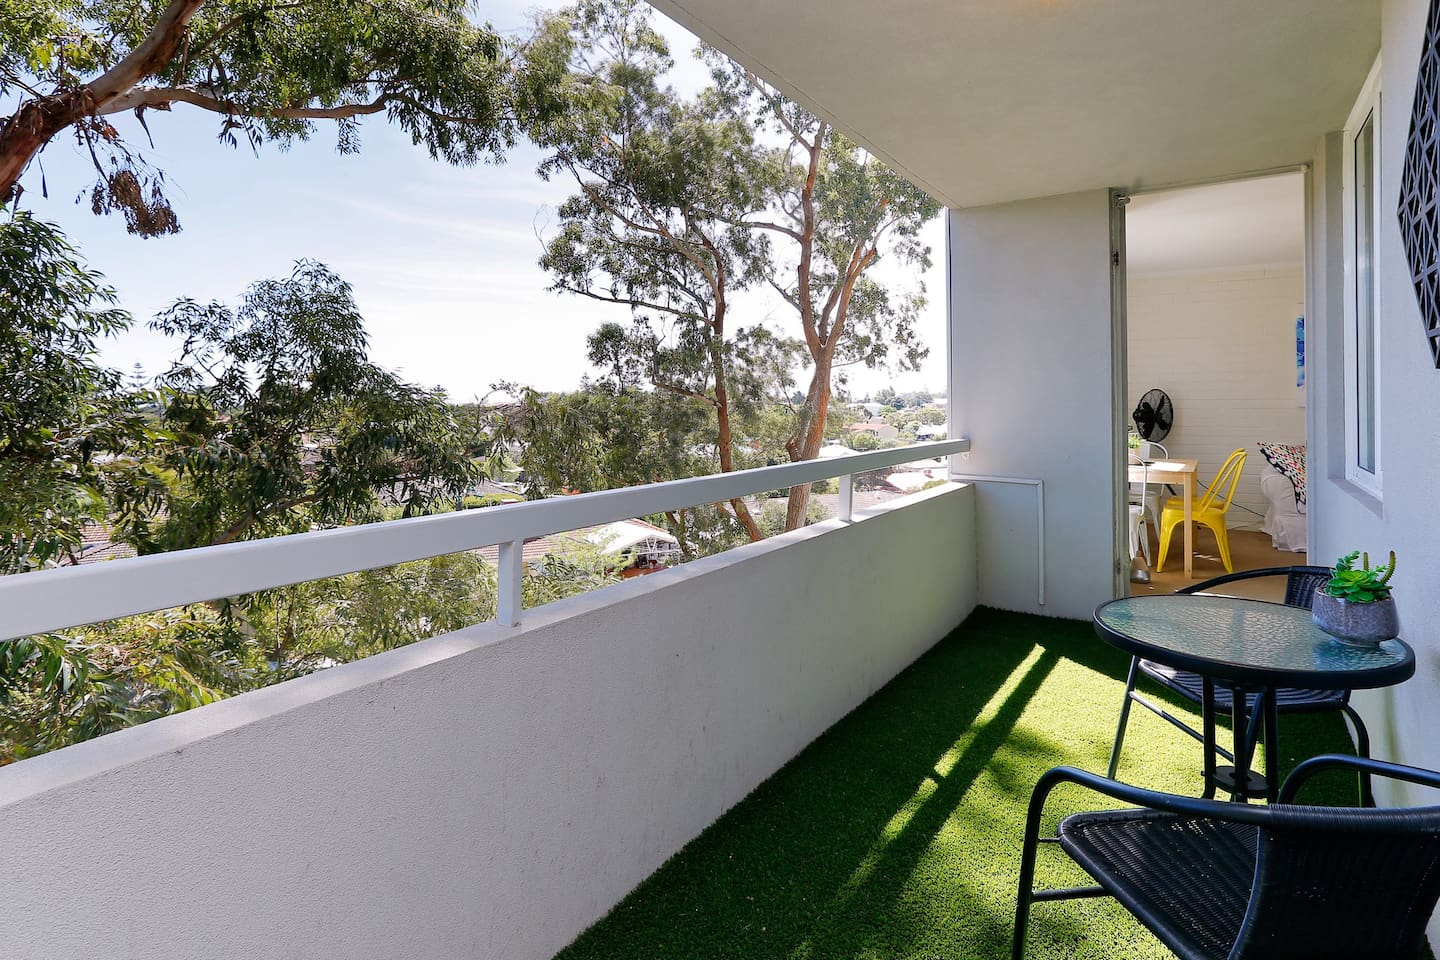 Over-sized balcony to enjoy a leafy outlook during the day or sunsets at night.